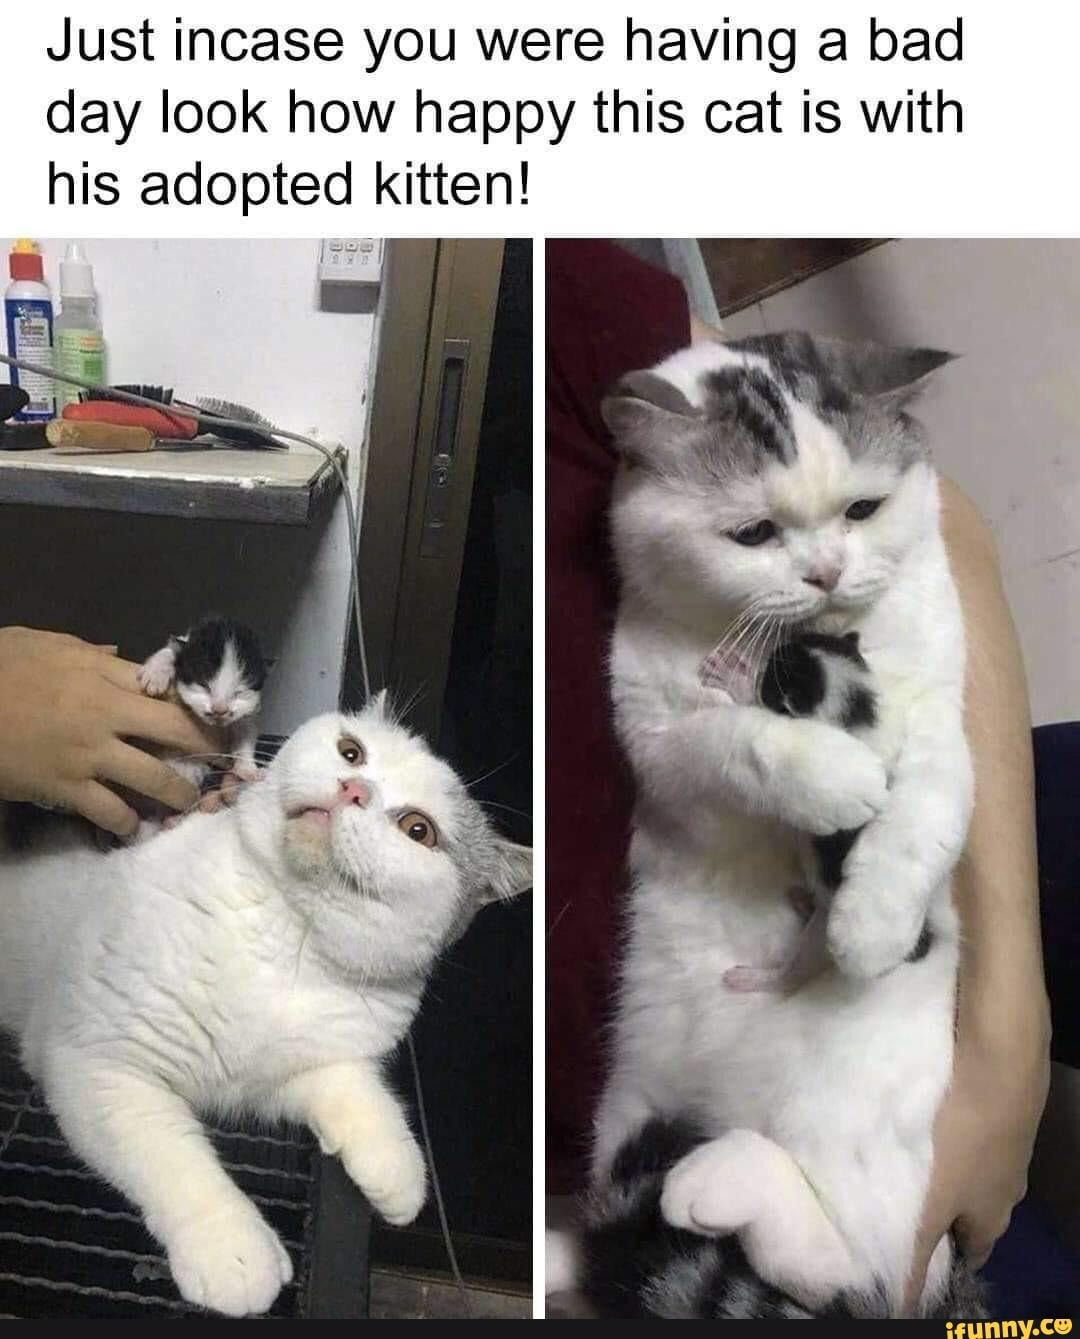 Just Incase You Were Having A Bad Day Look How Happy This Cat Is With His Adopted Kitten Ifunny Cute Baby Animals Cute Animals Cute Funny Animals